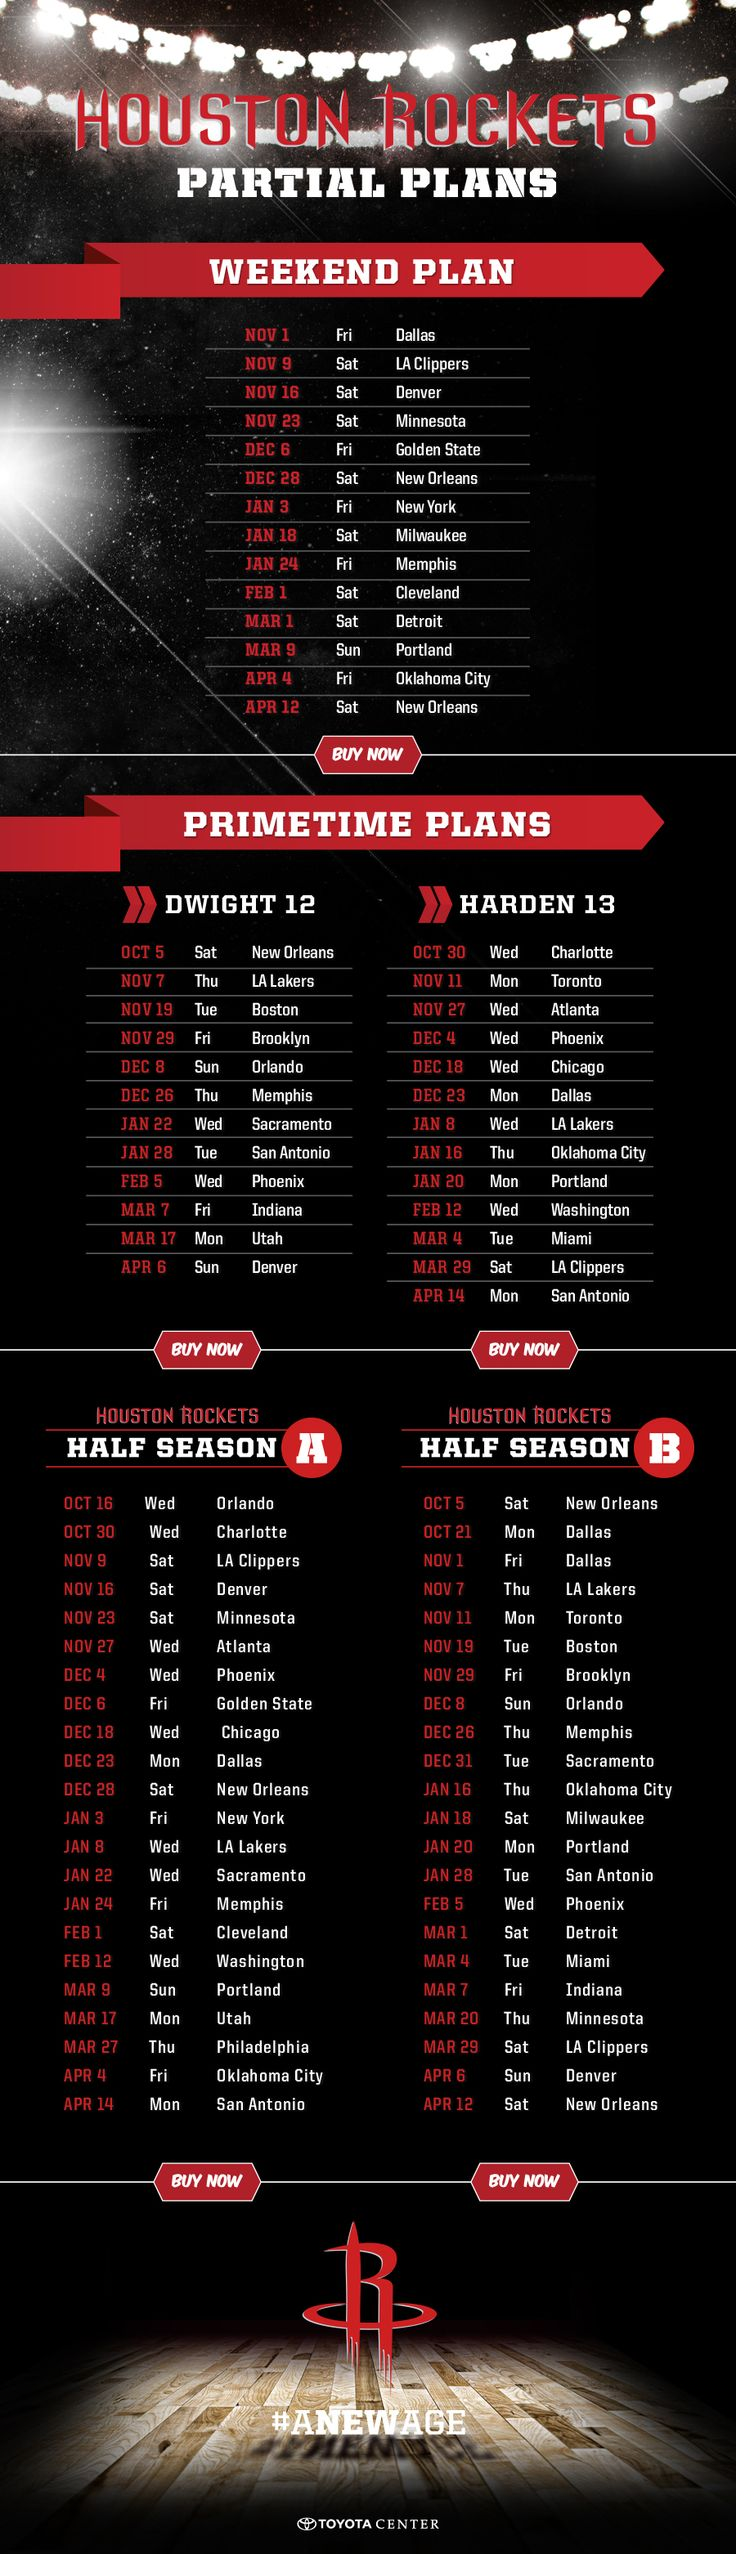 Se season tickets for houston rockets - Partial Season Ticket Plans Available Now Get Yours Now Houston Rockets Mini Plans